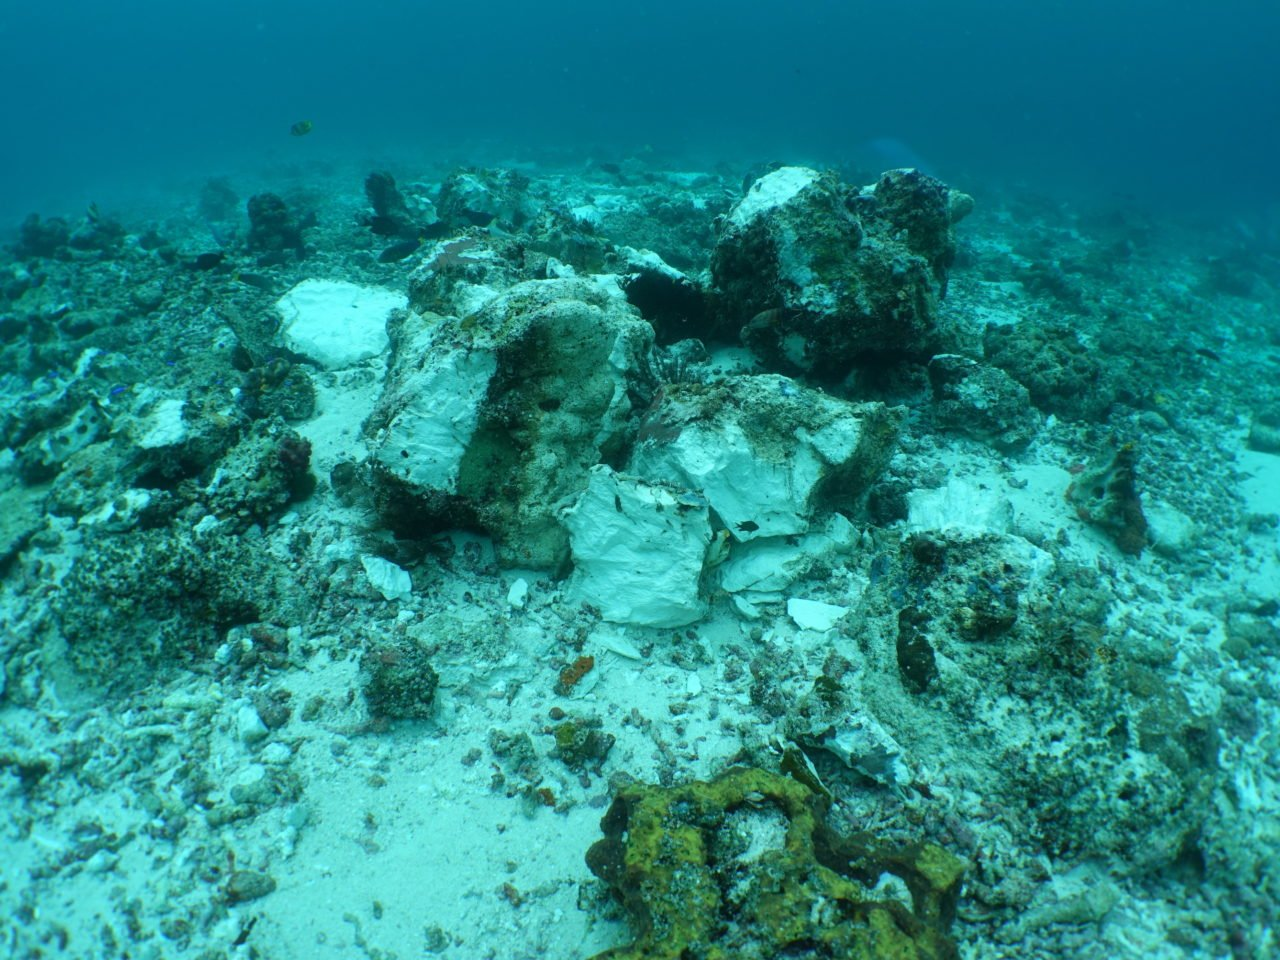 Reef damage at Raja Ampat Crossover reef